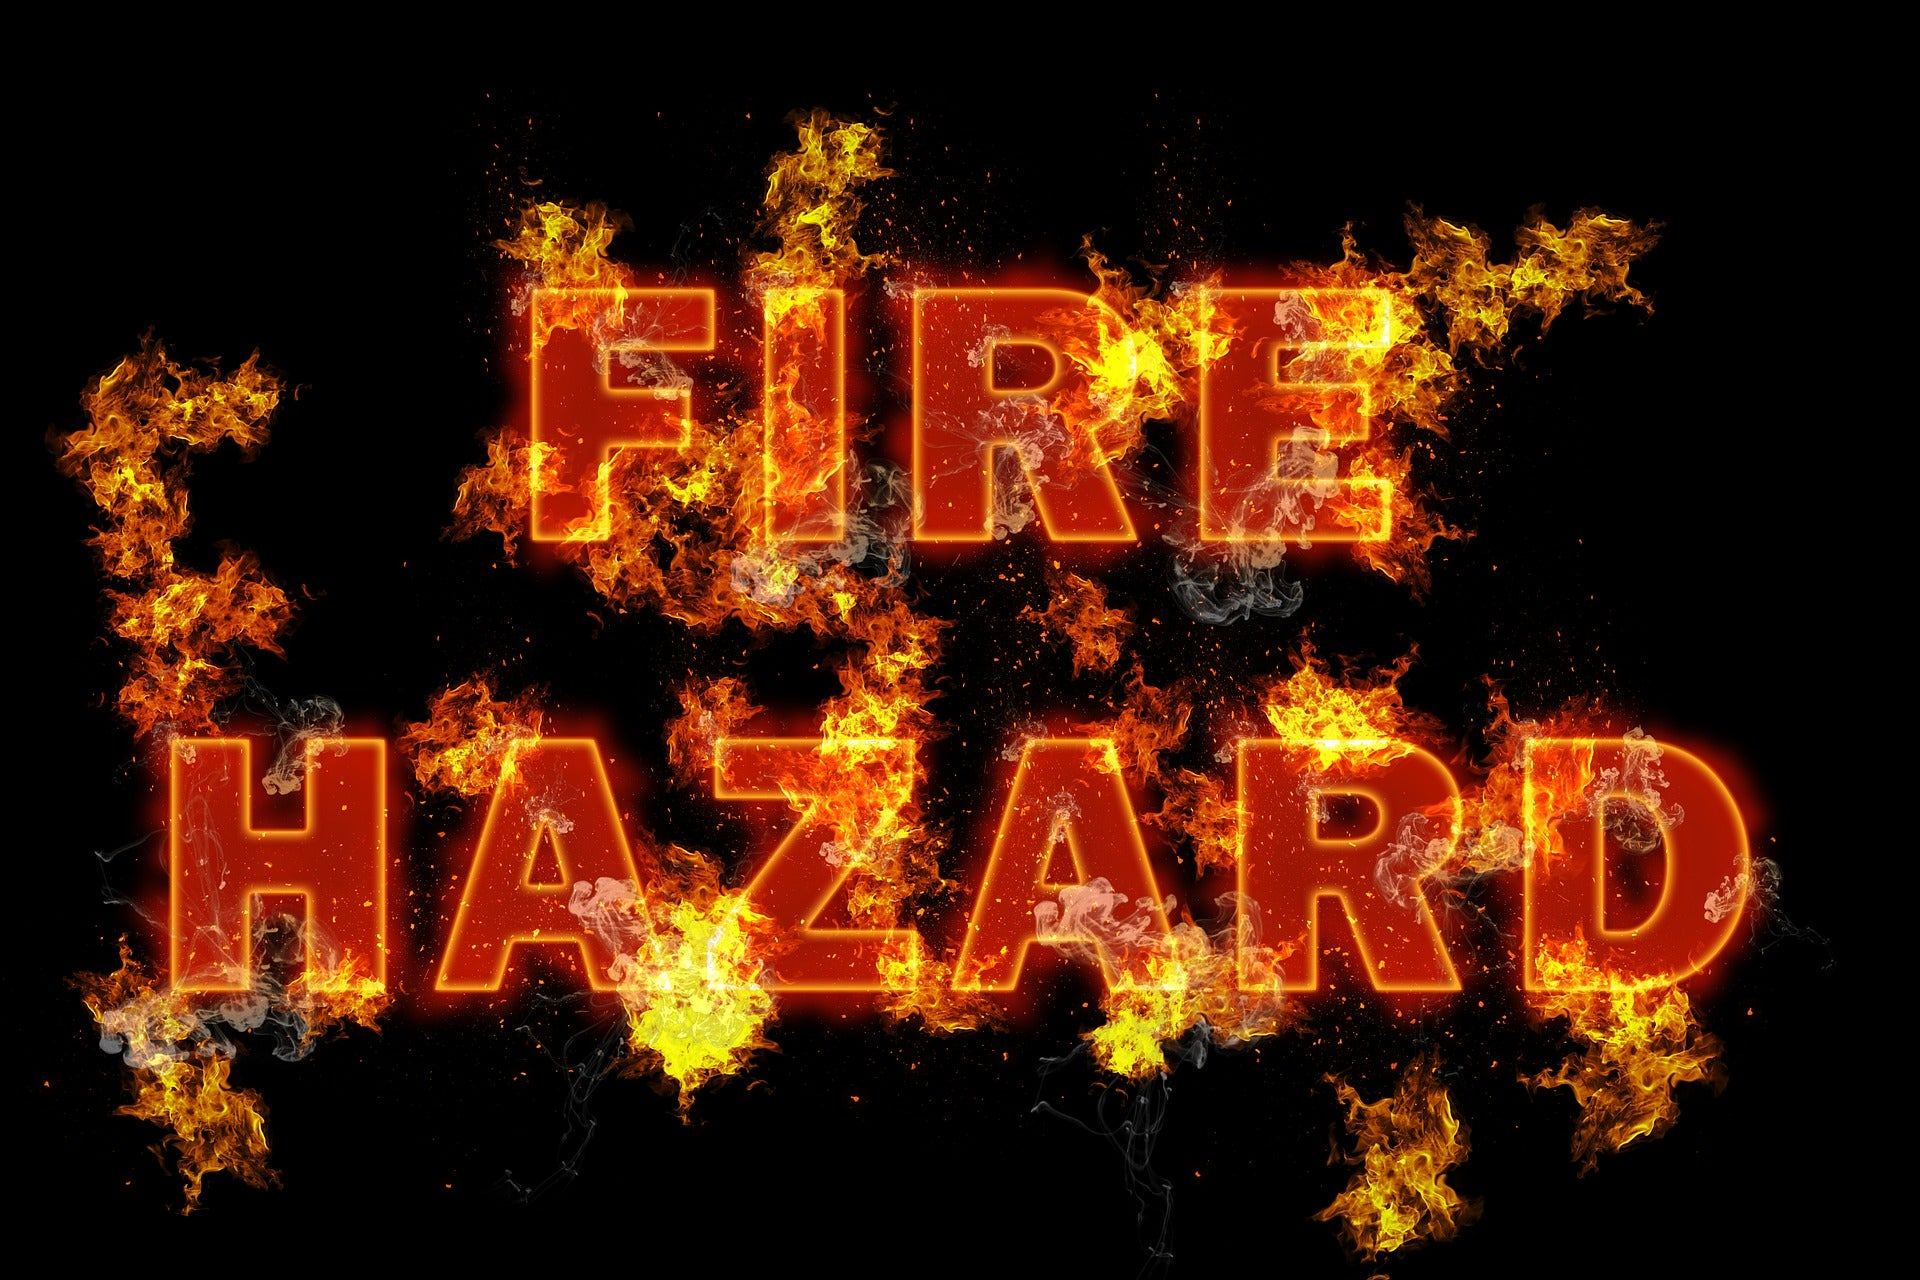 Fire hazard sign. Lab coats protect you from fire.